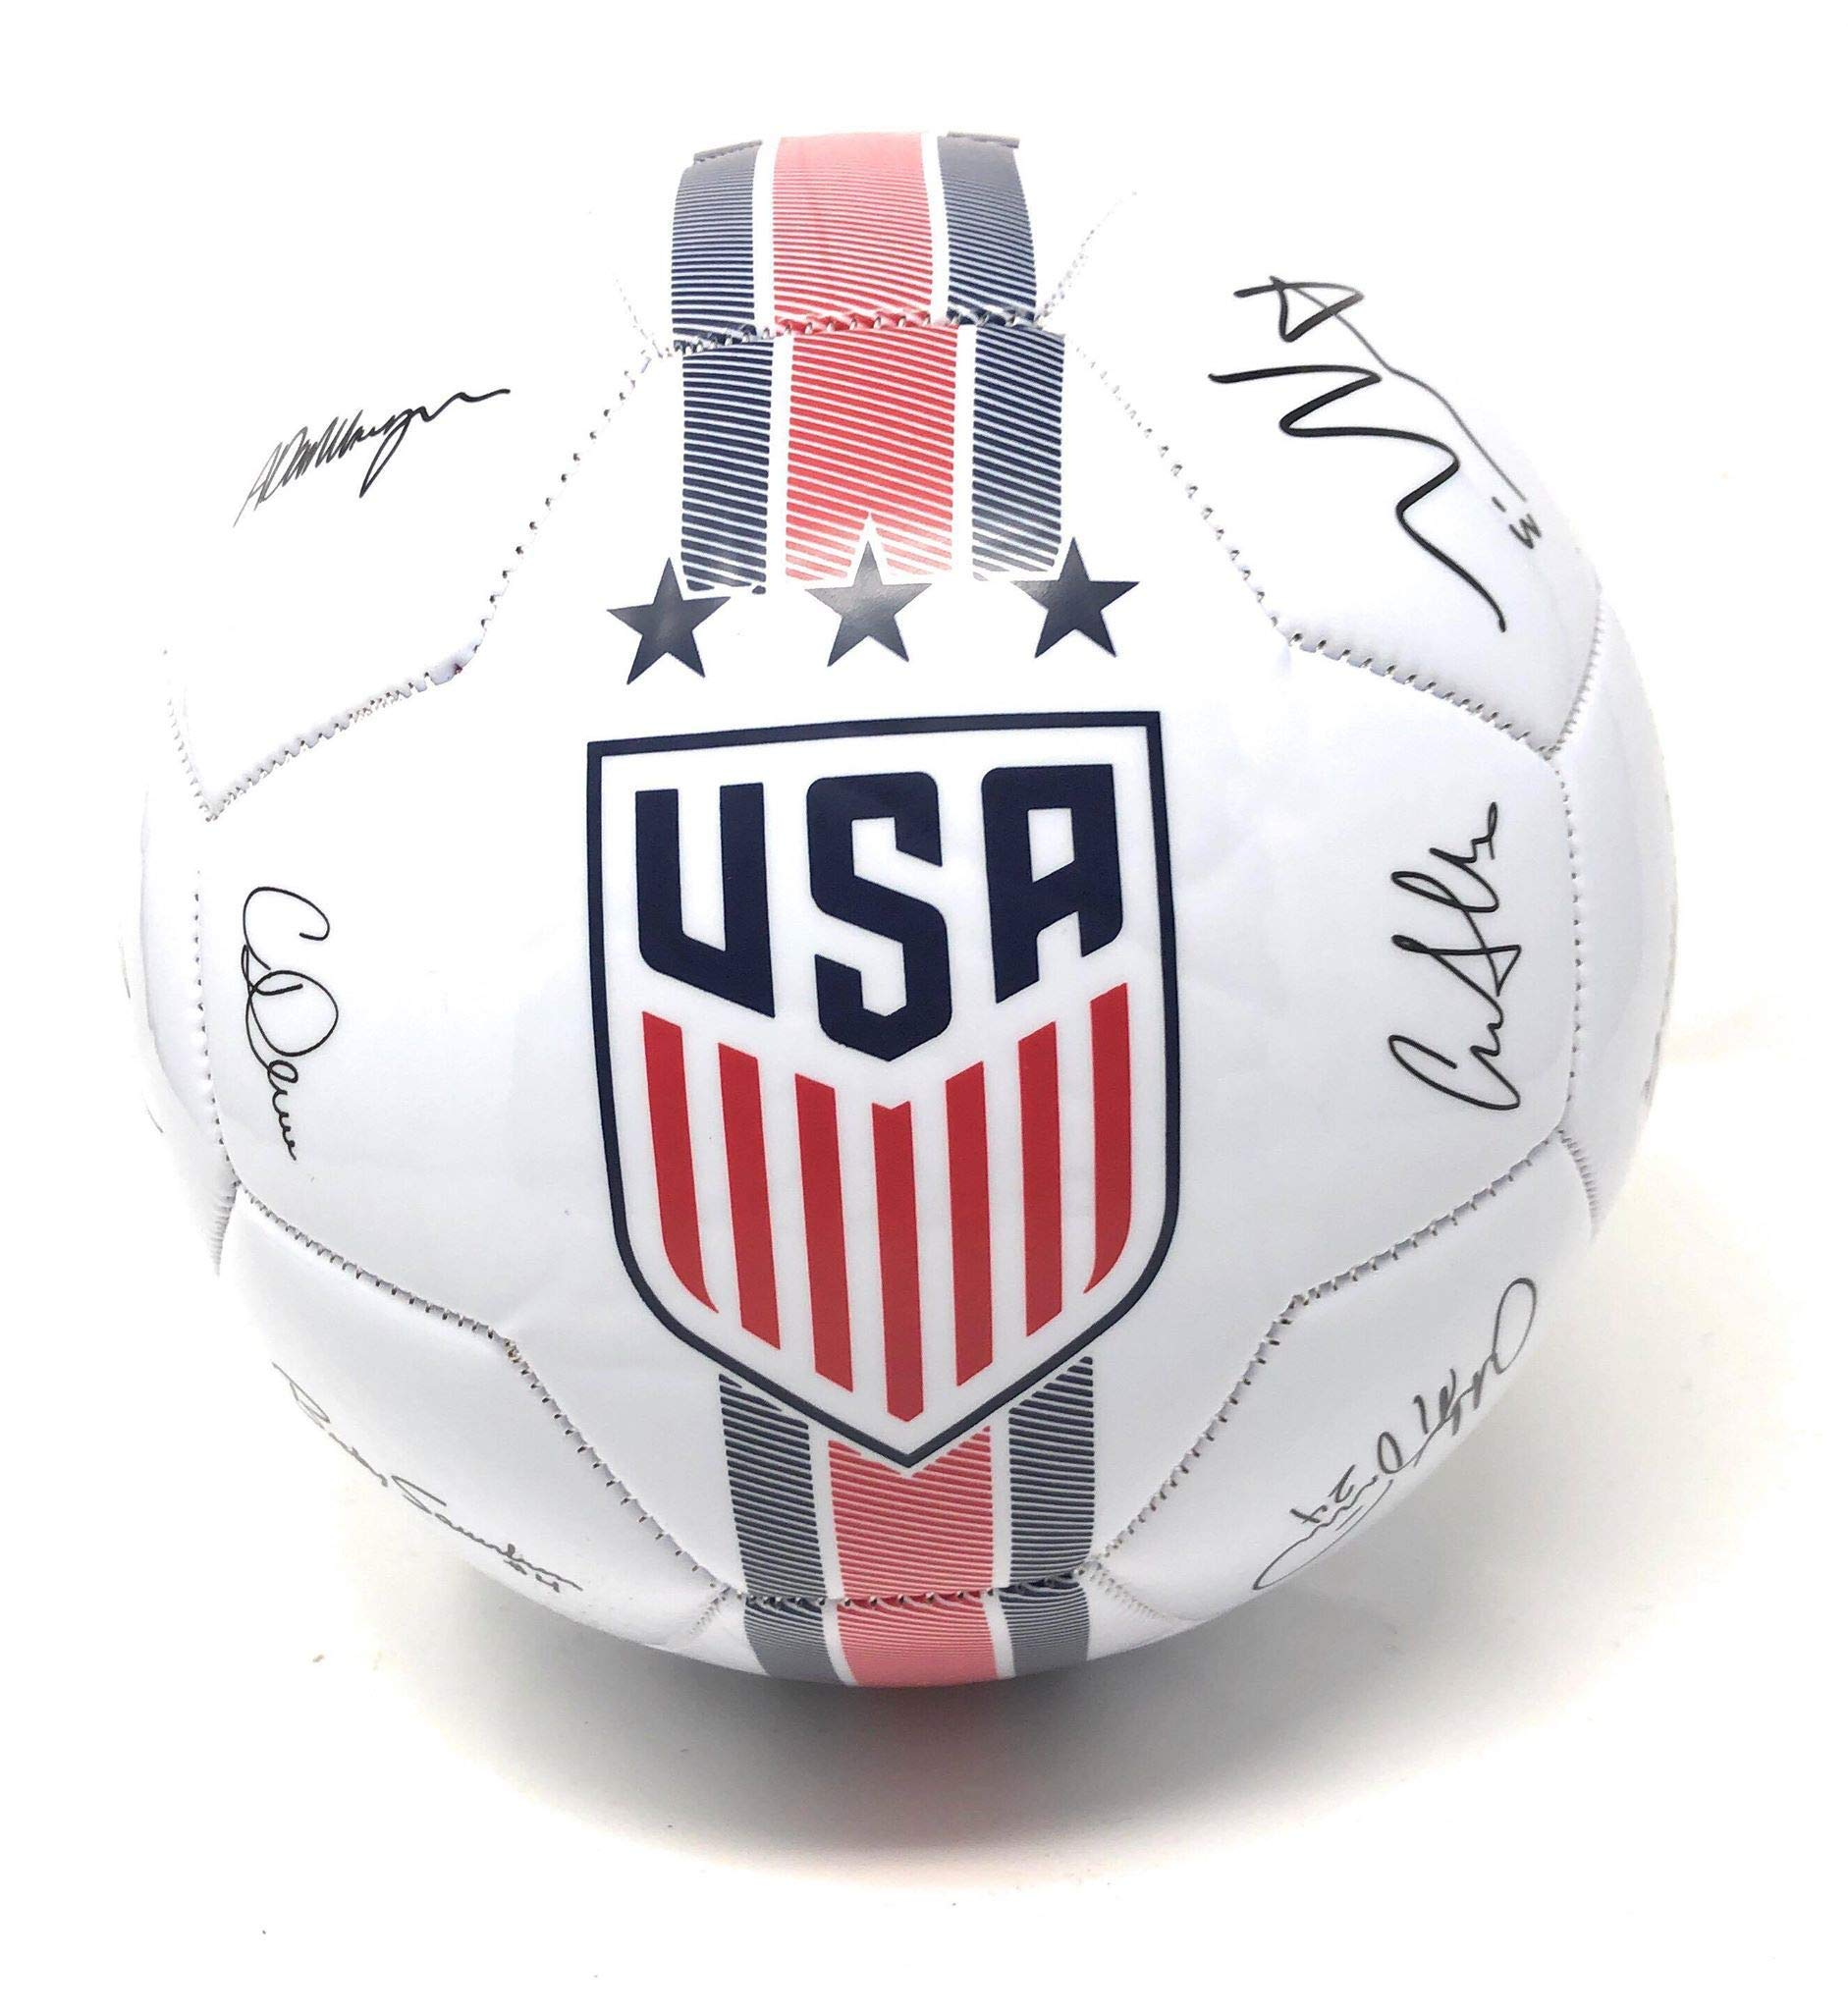 USA Soccer Ball Size 5 Signature Official Licensed USWNT United States National Team USMNT - Great for Players, Trainers, Coaches Gift